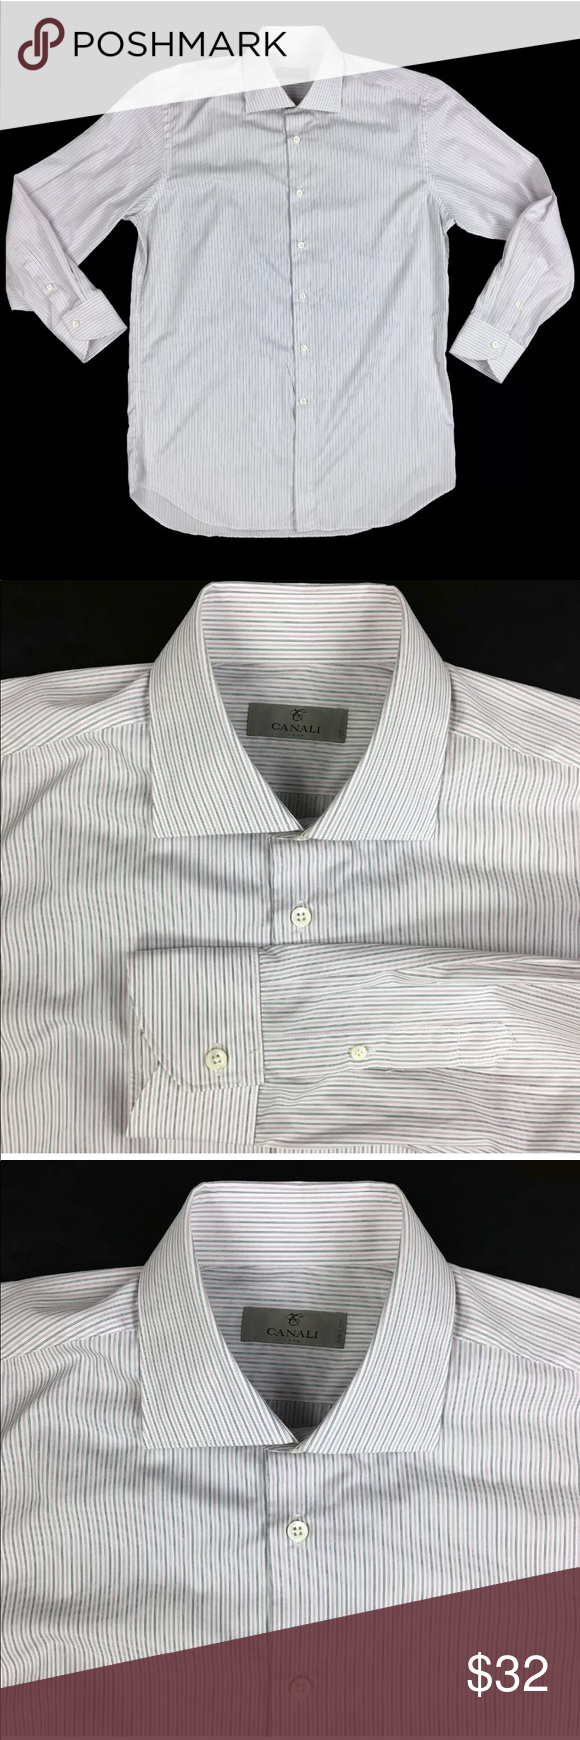 Canali Striped Dress Shirt In Size 16 41 An Excellent Used Condition Canali Striped Black Pink And White Striped Striped Dress Shirt Dress White Striped Dress [ 1740 x 580 Pixel ]